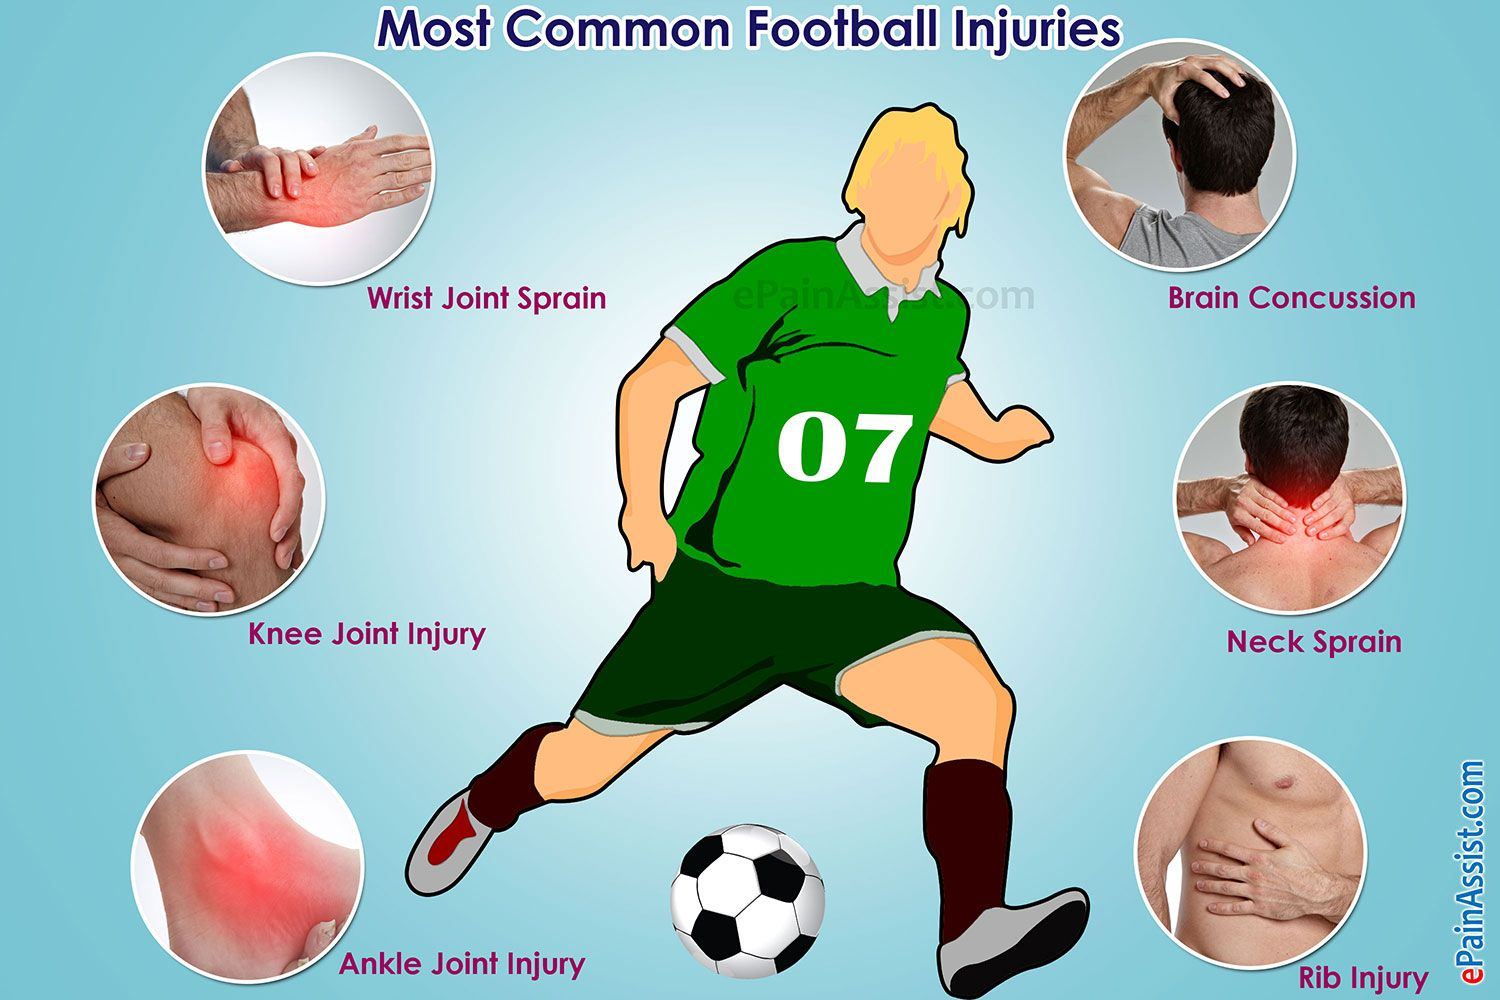 Common Football Injuries Are Sprain Of Neck Wrist Ankle Knee Football Injuries Sprained Ankle Sprain